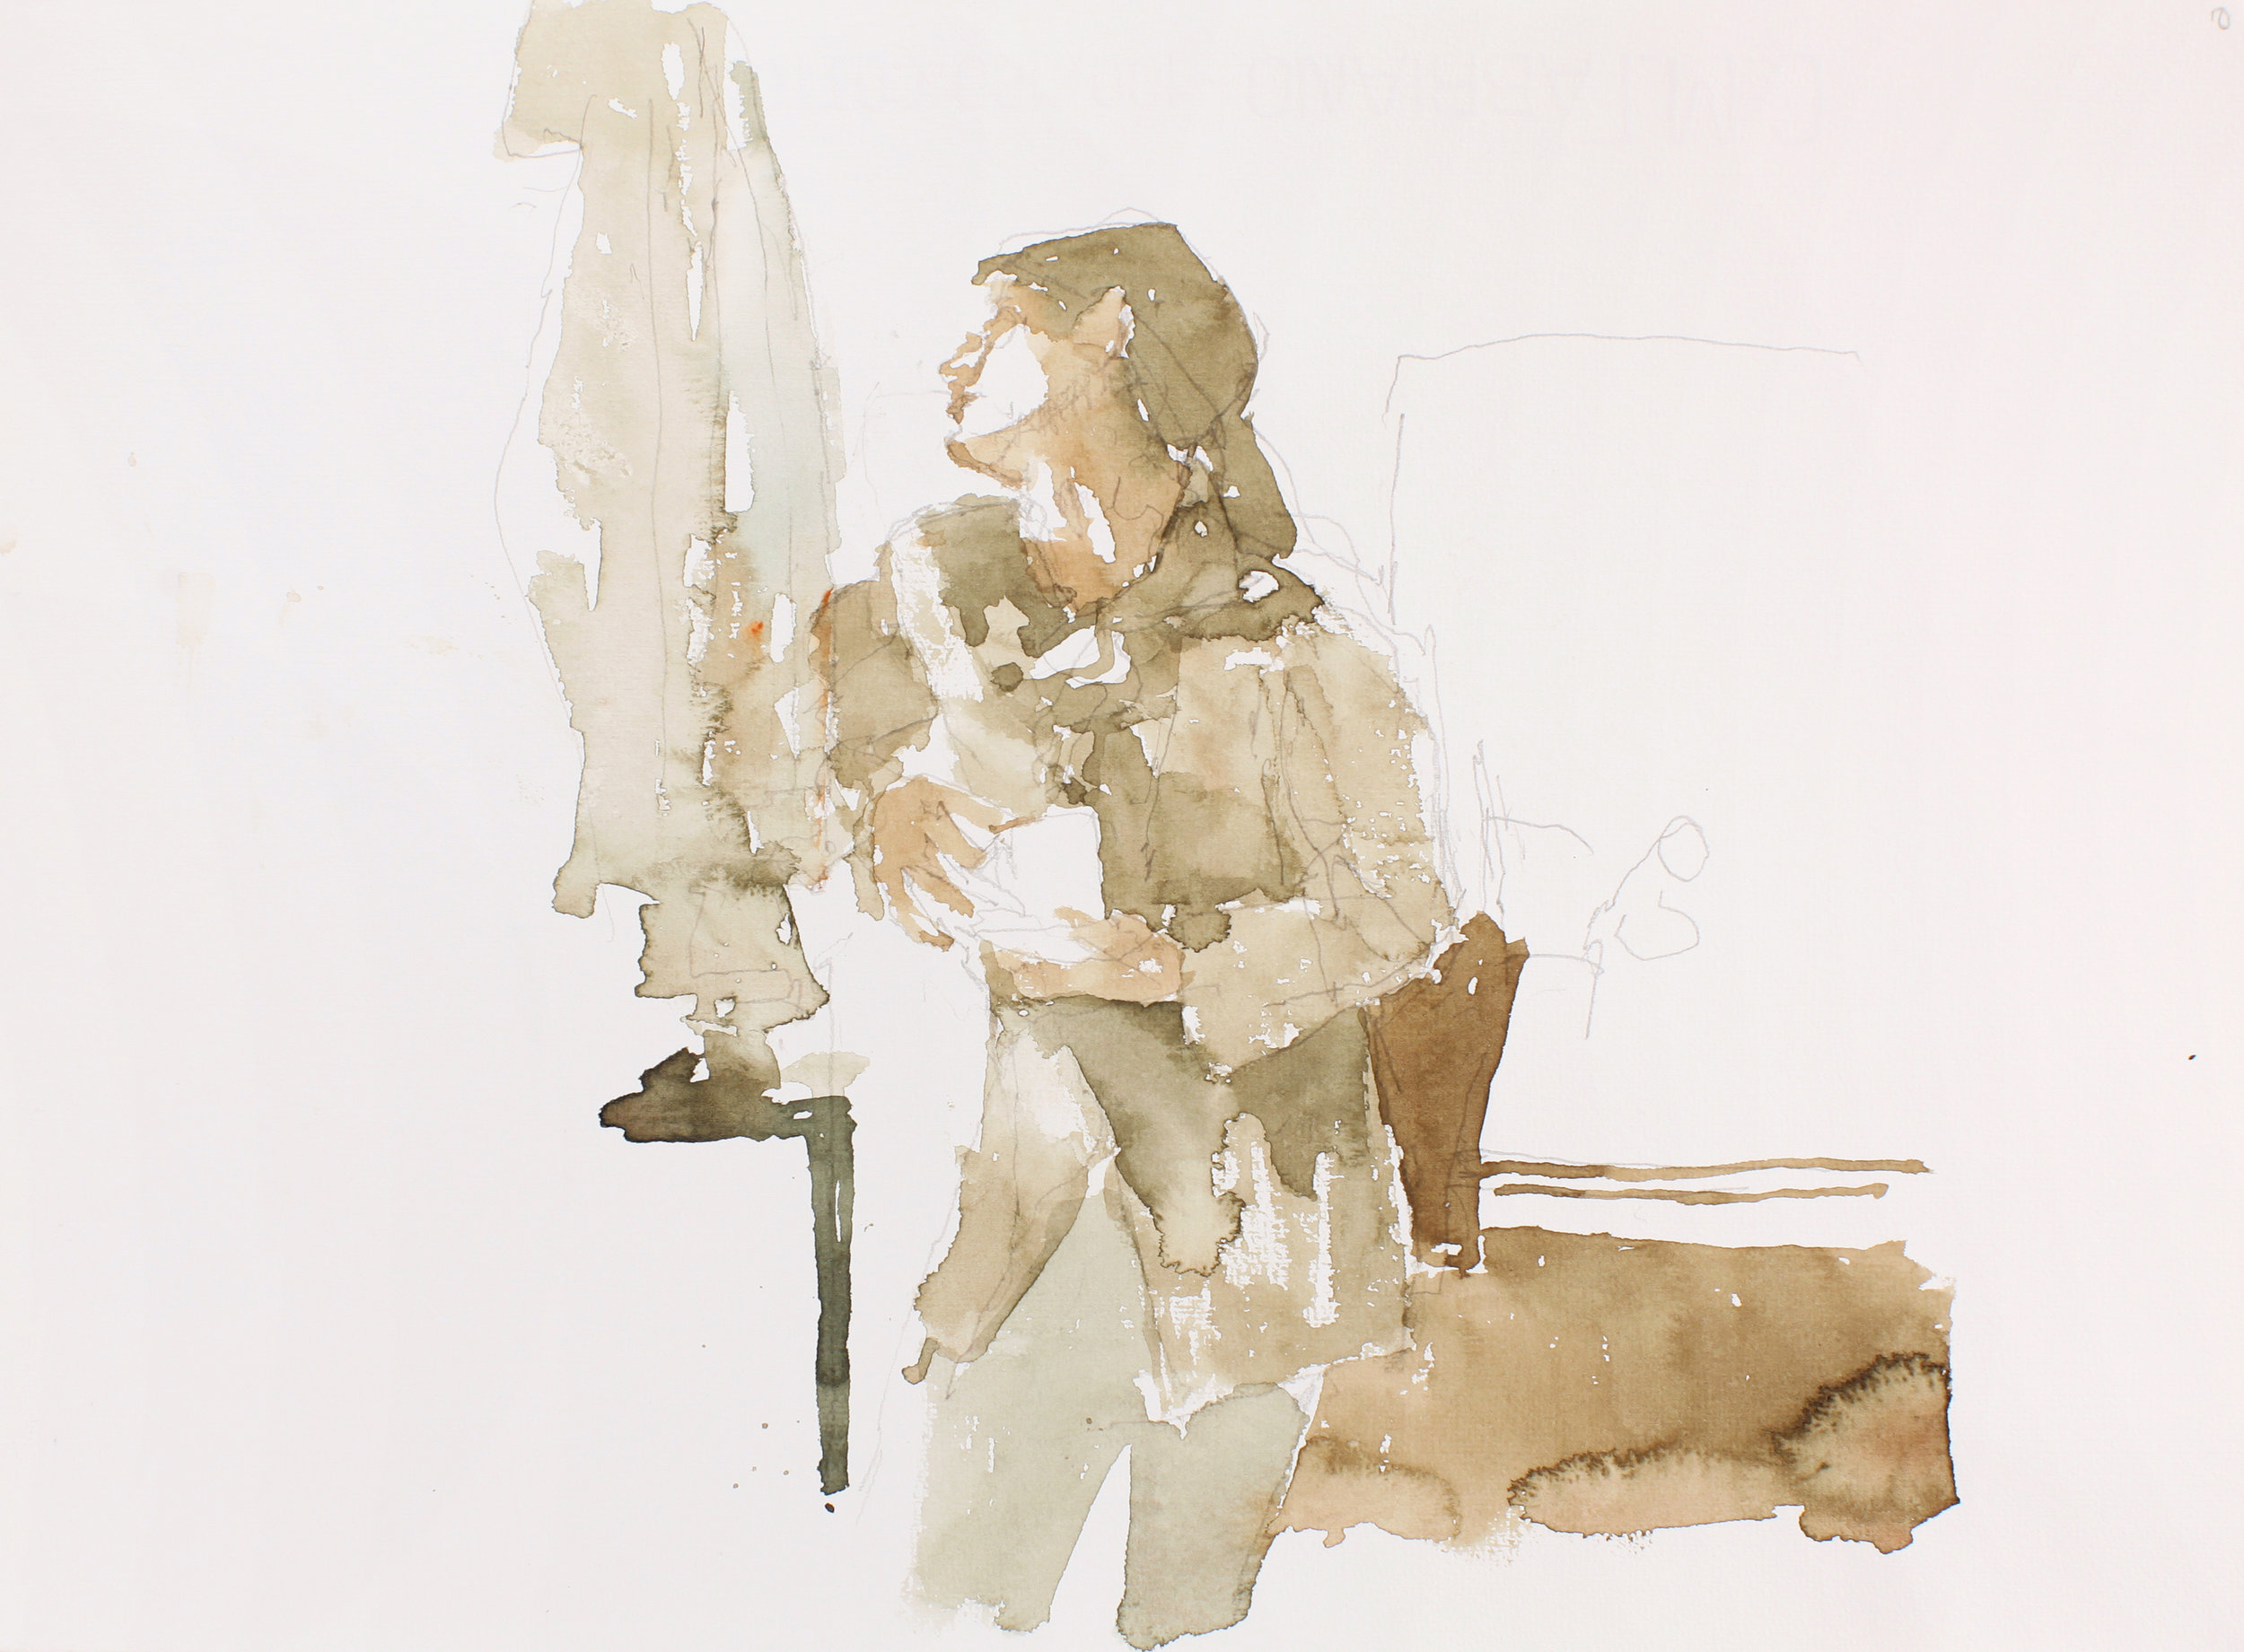 2005_Figure_Holding_Coffee_Cup_watercolour_and_pencil_on_paper_11x15in_28x38cm_WPF065.jpg